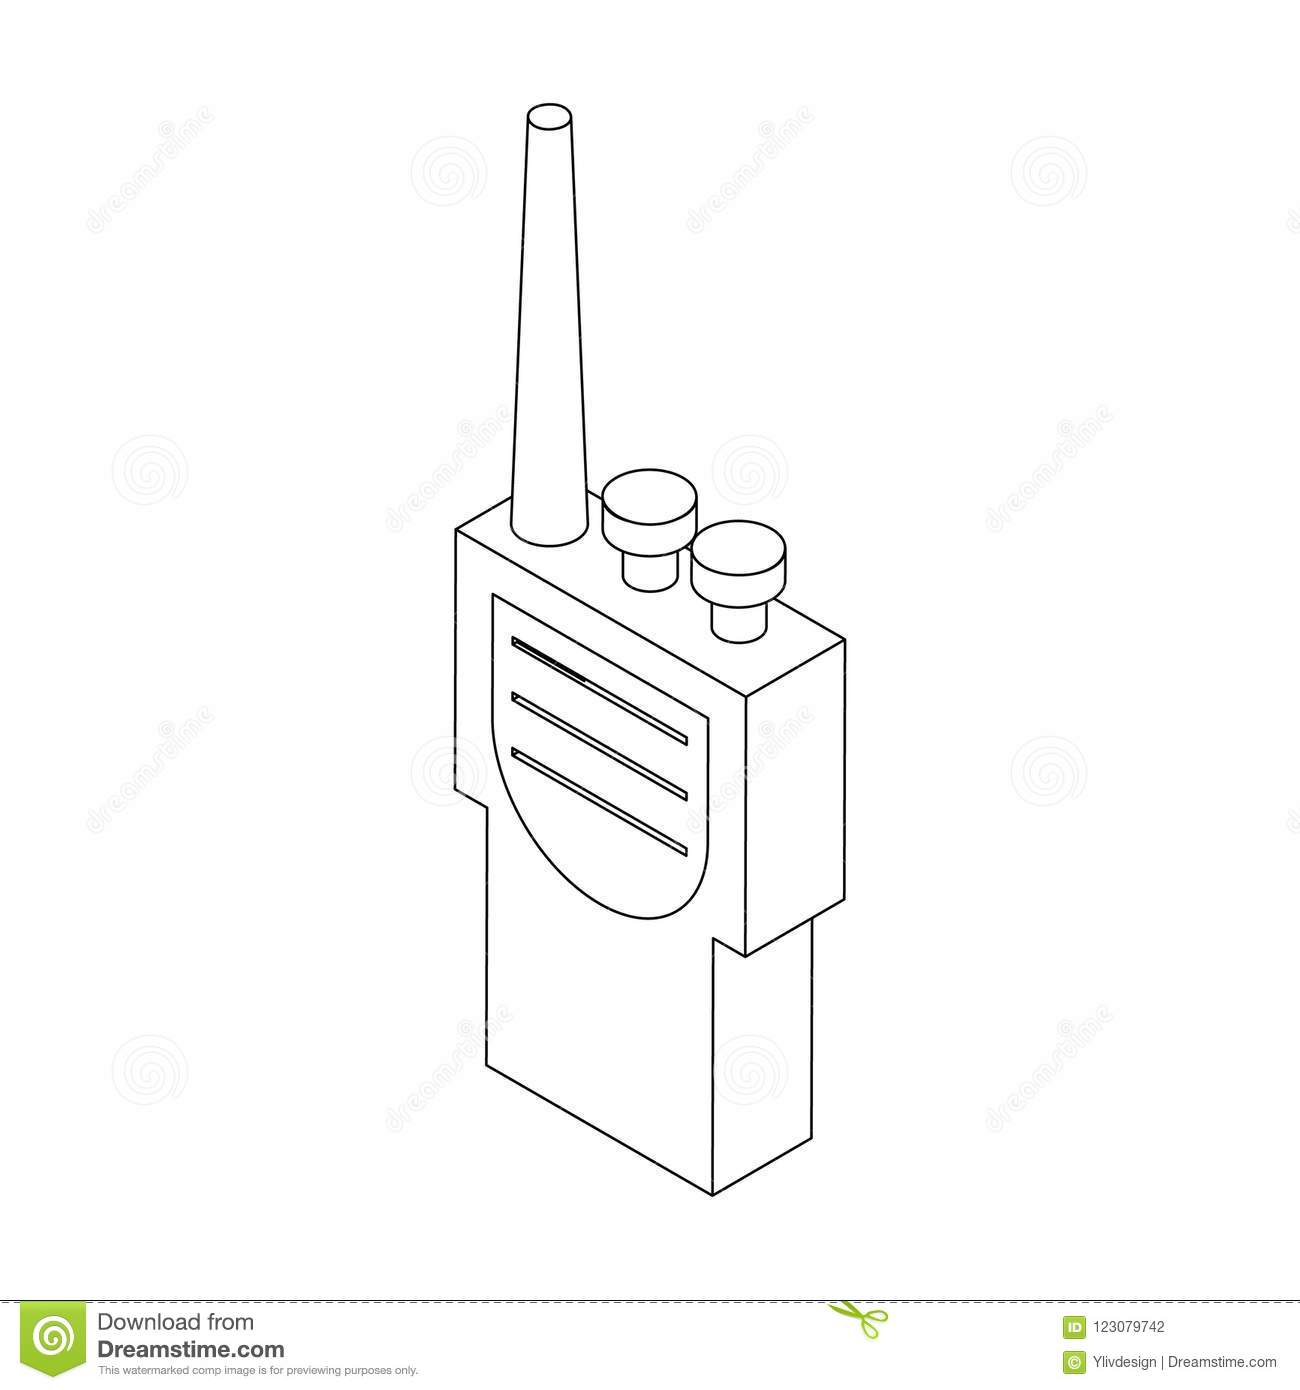 hight resolution of portable handheld radio icon in isometric 3d style